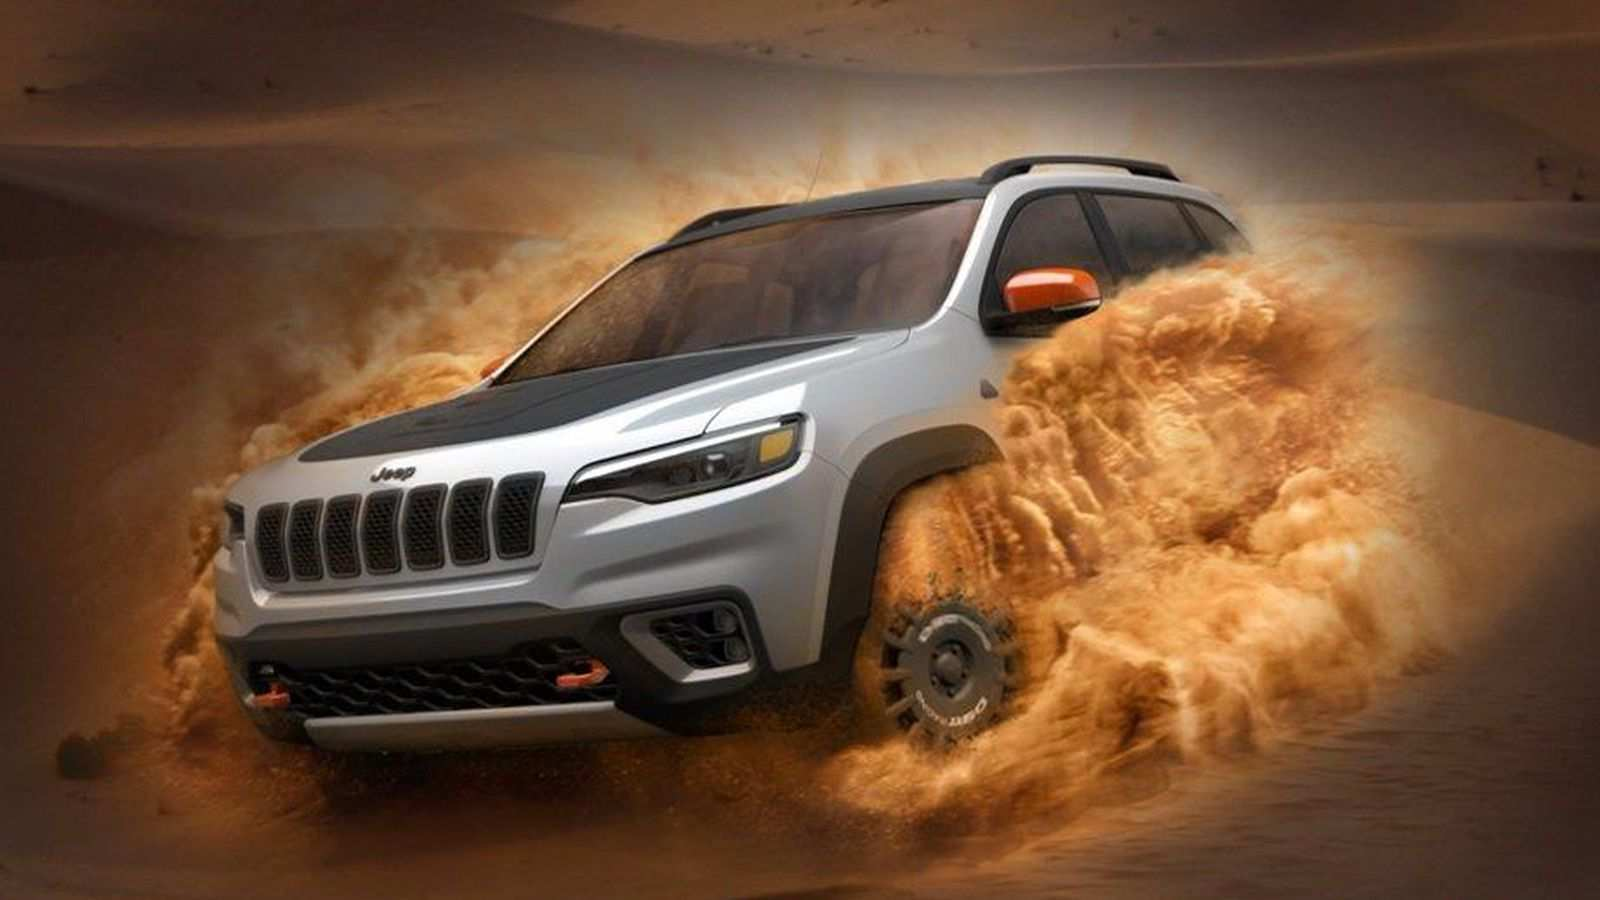 25 All New Jeep Models 2020 Rumors